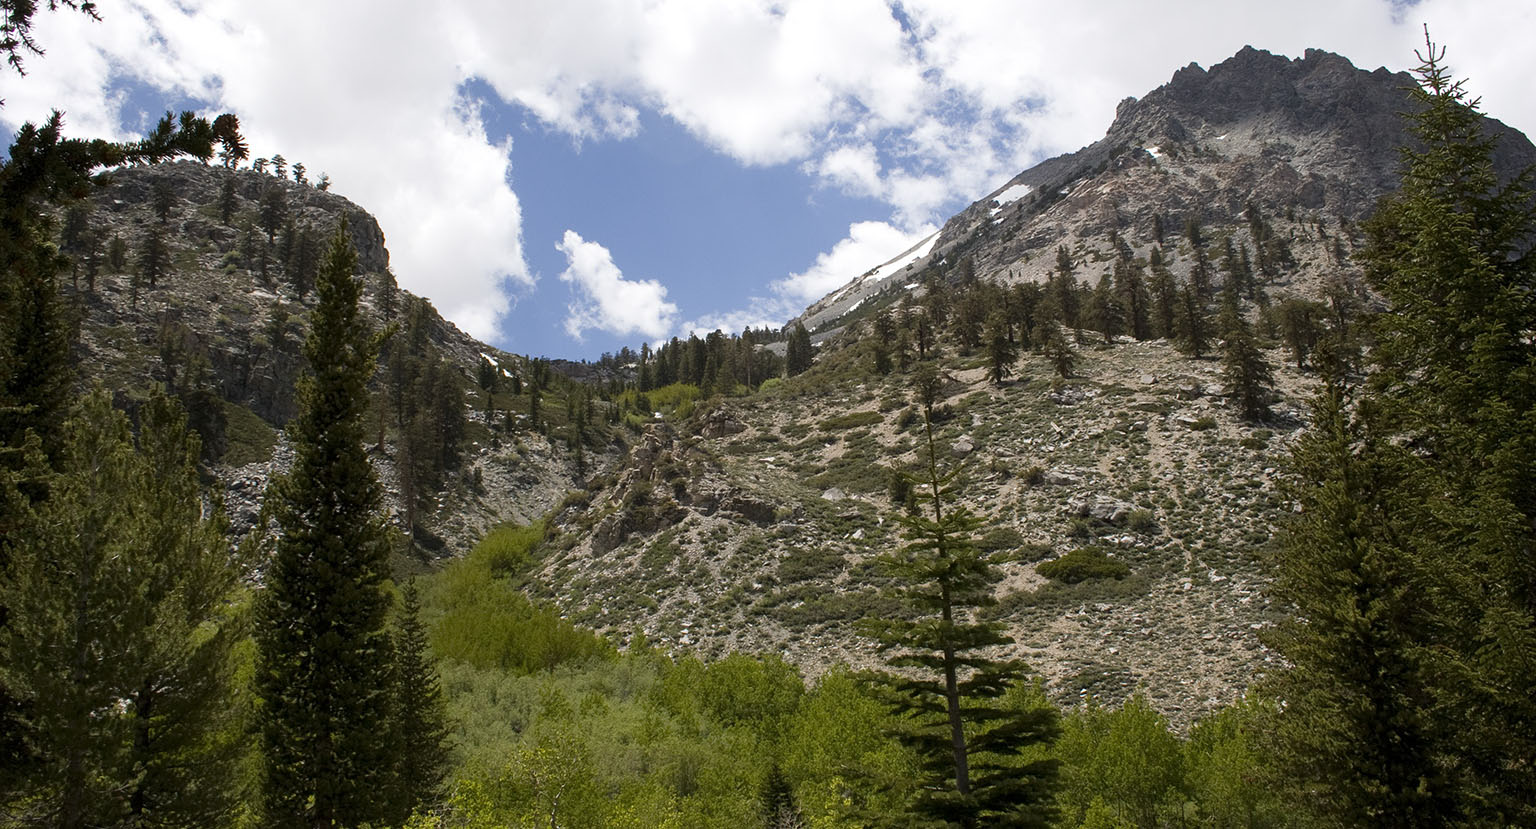 The western view - towards Kearsarge Pass - from Onion Valley Campground